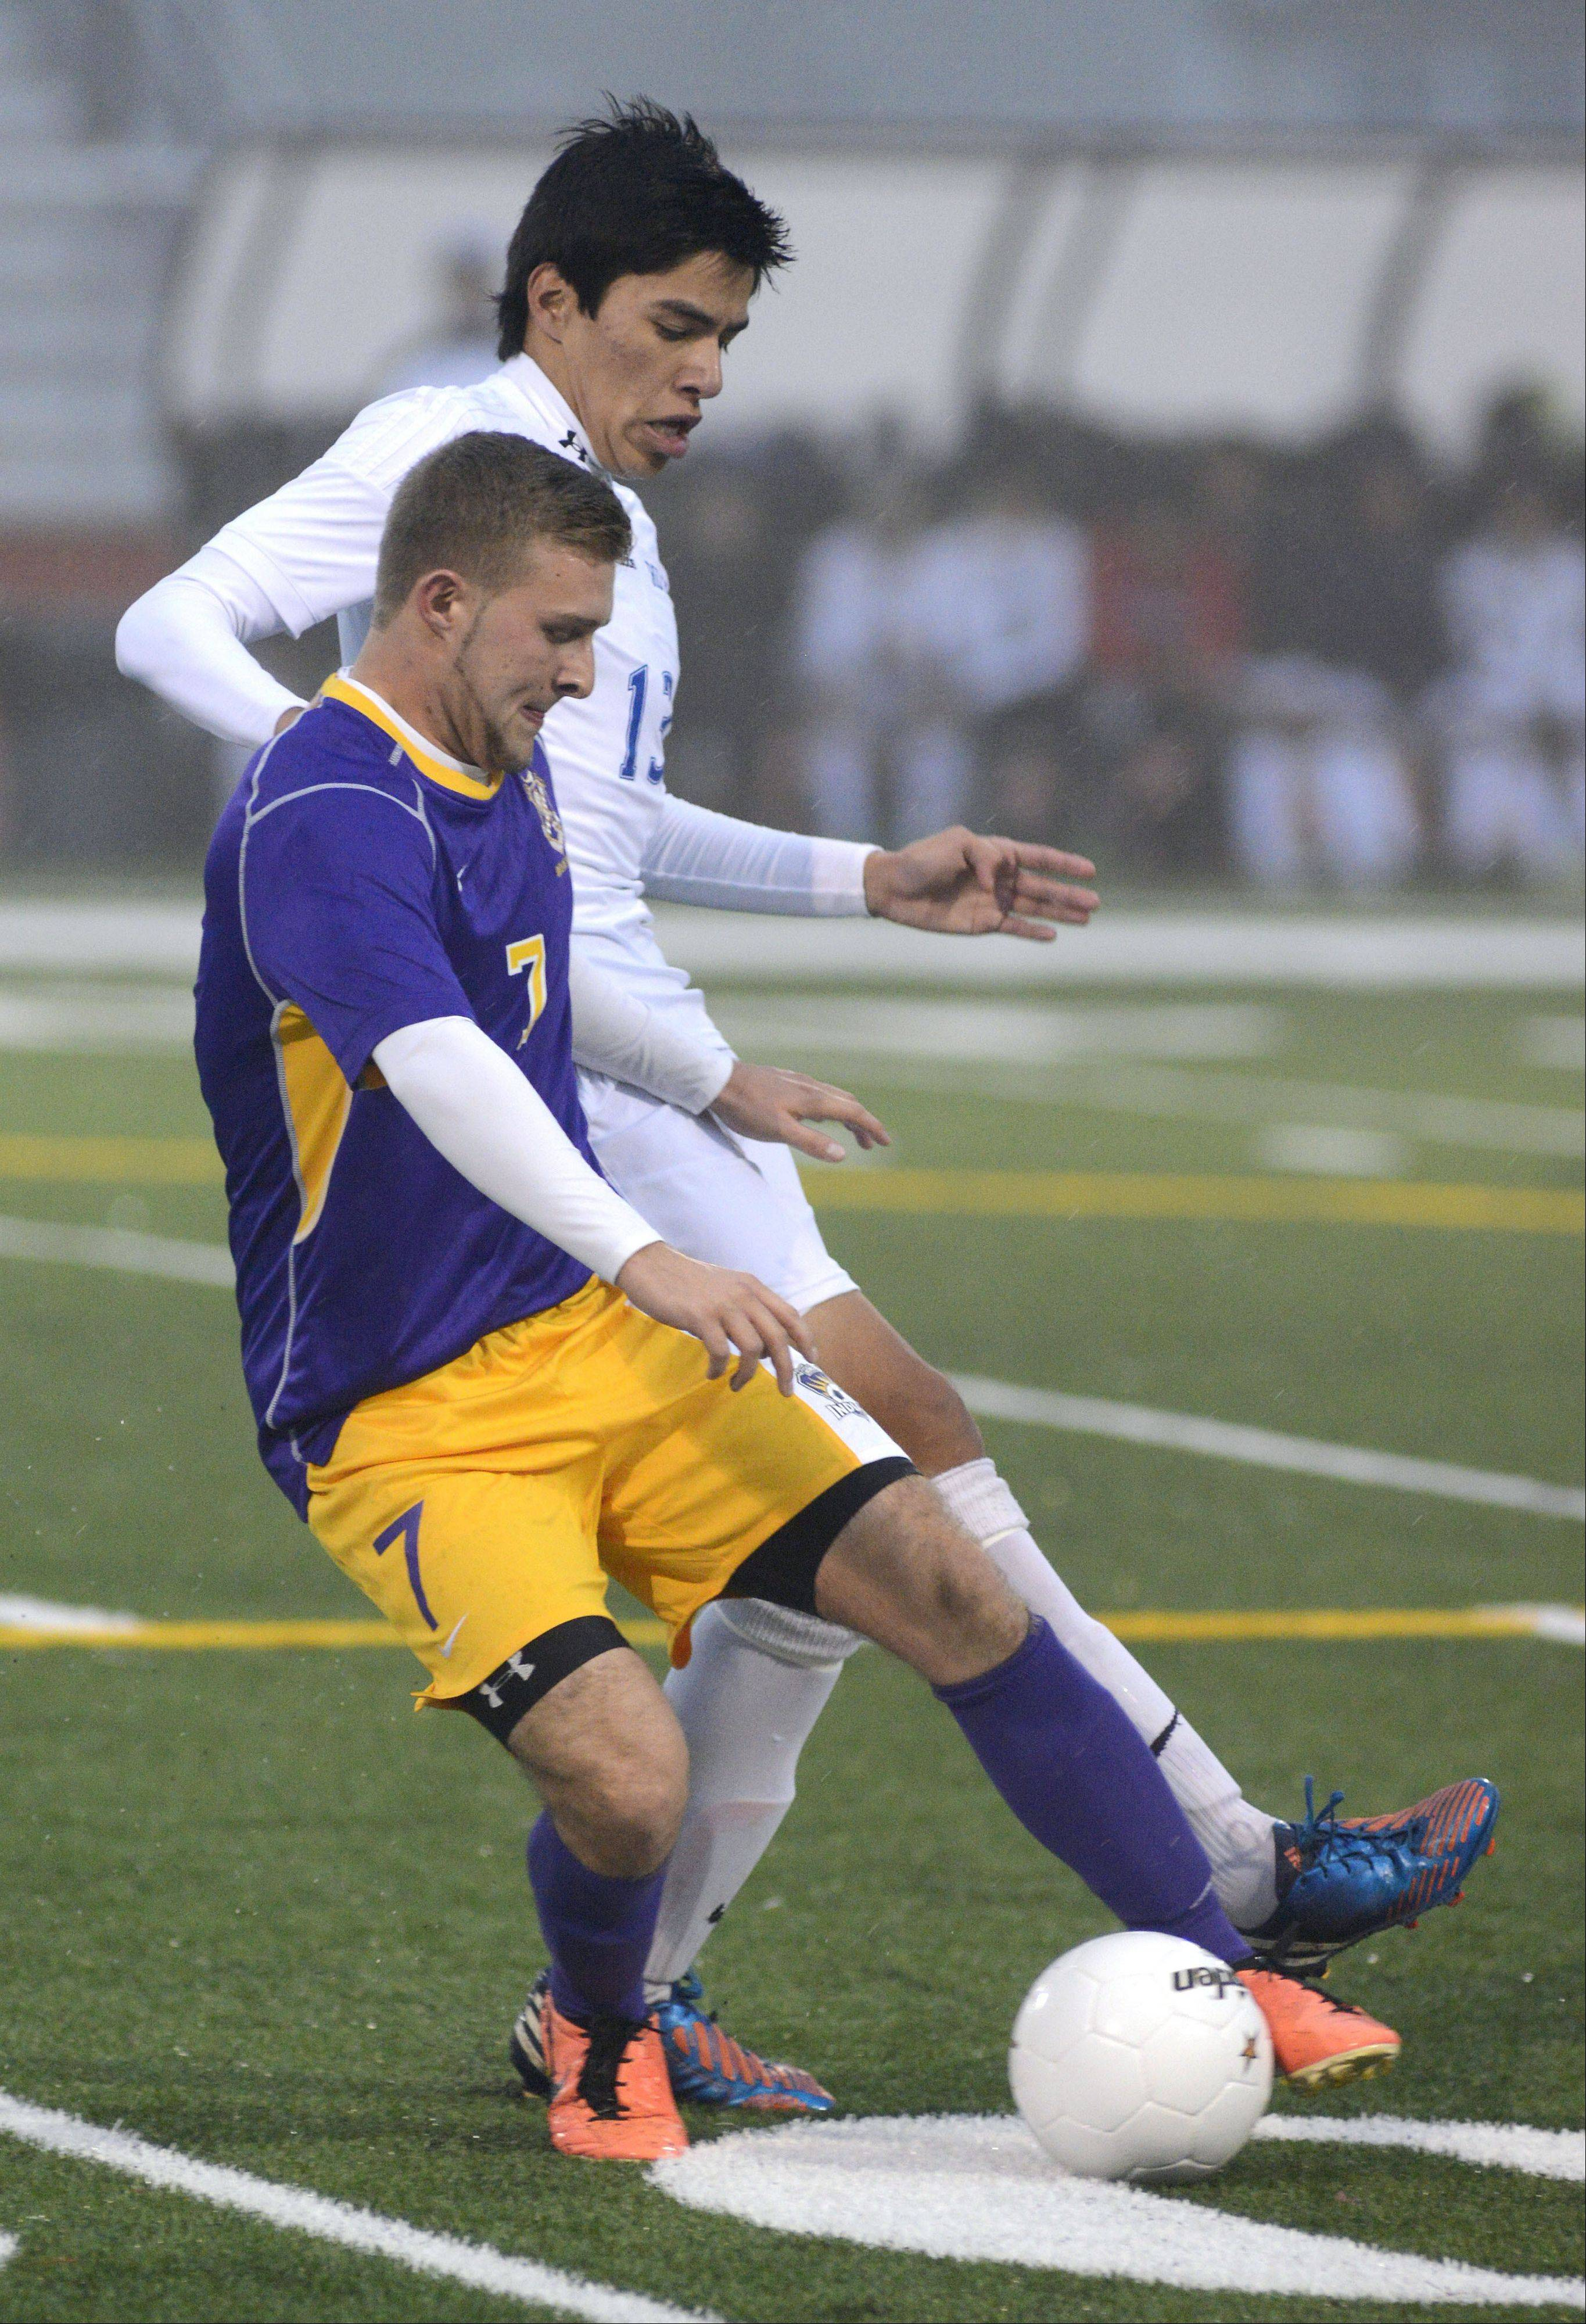 Hononegah's Cody Green and Larkin's Hector Mendoza fight for the ball in the first half of the Huntley sectional semifinals on Wednesday, October 30.